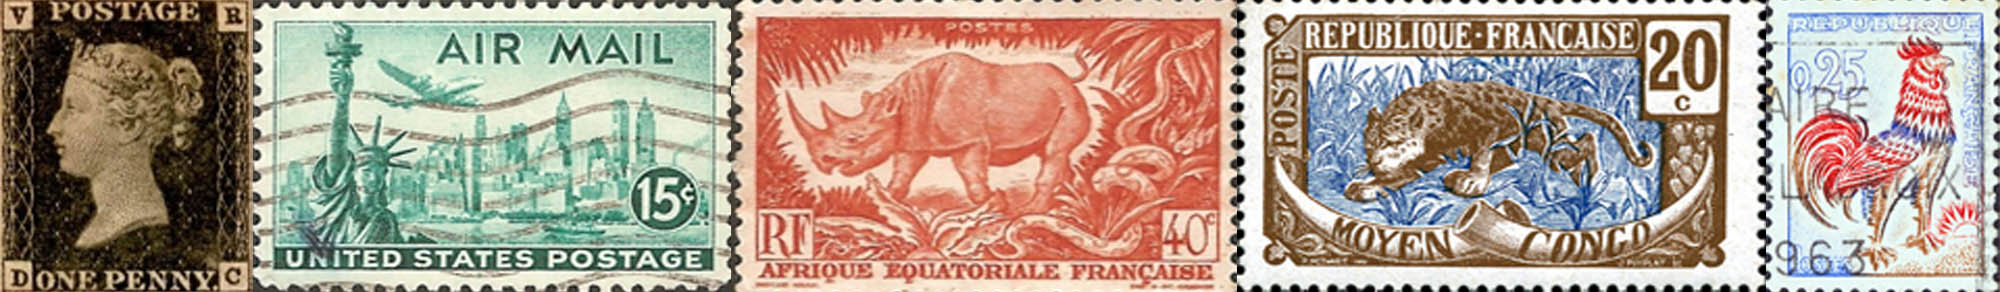 Stamp collecting web site